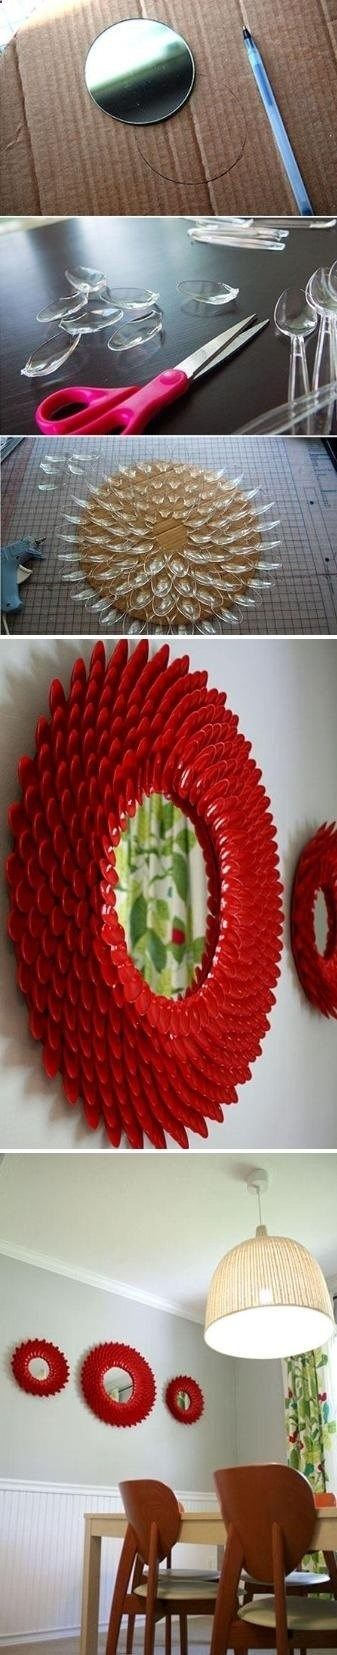 Make a Mirror from Plastic Spoon - Make a Chrysanthemum Mirror from Plastic Spoon ♥Follow us♥